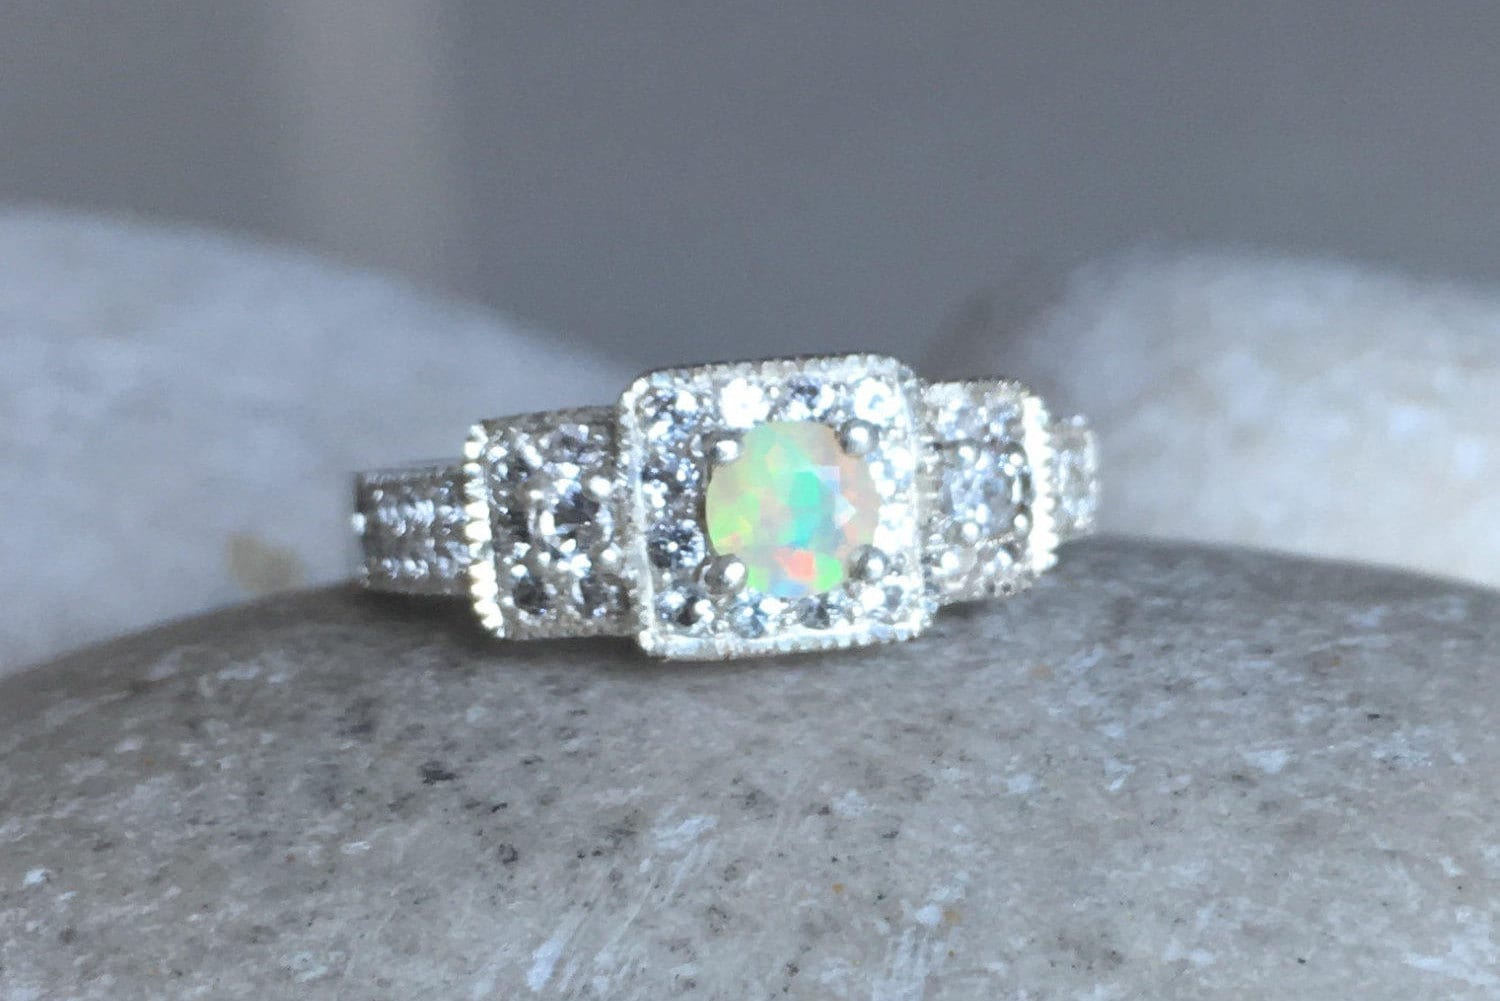 triplet spectacular real engagement sterling style antique media or ringspectacular large filigree opal genuine natural rings australian ring ringlarge